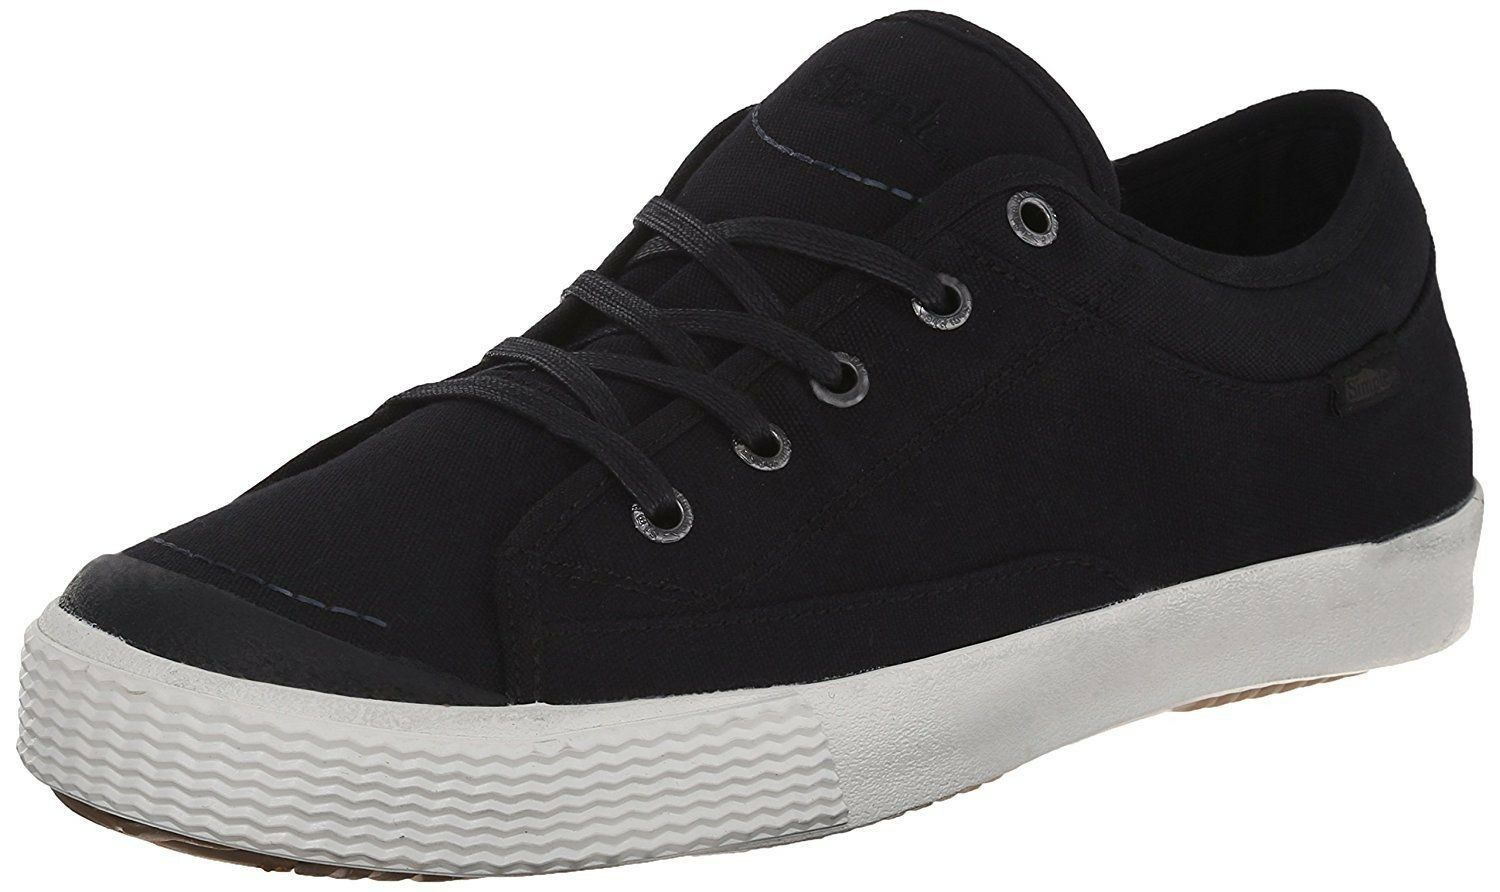 Simple New Men's Boy Sneaker Black Wingman Trainers Skater Casual Fashions Shoes